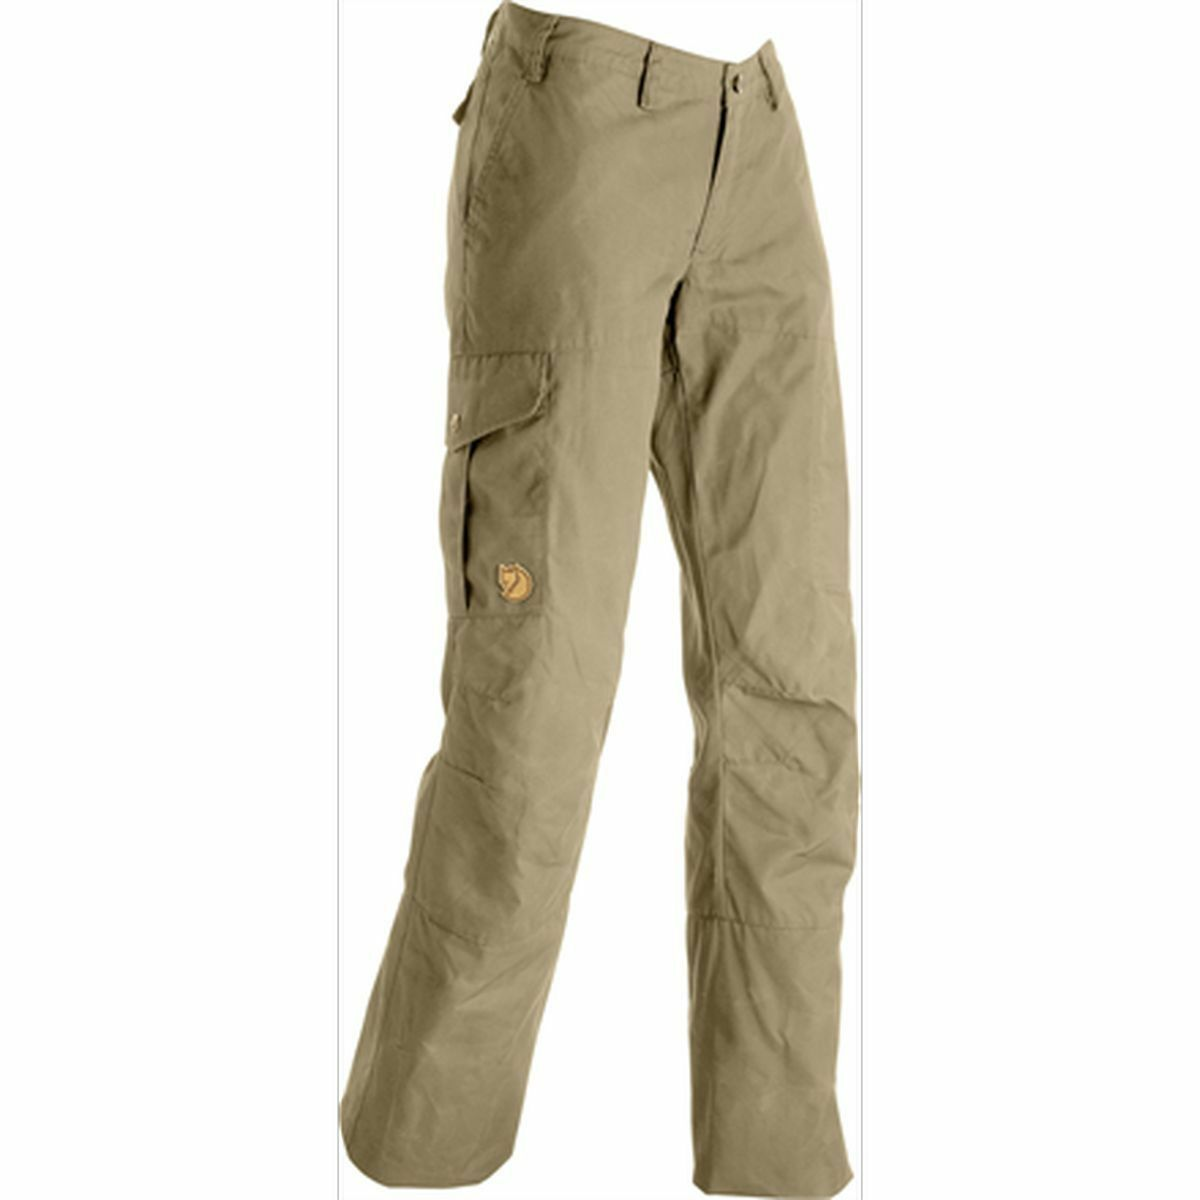 Fjäll Räven Karla Trousers, Sand,  Size 34, 89067  online discount